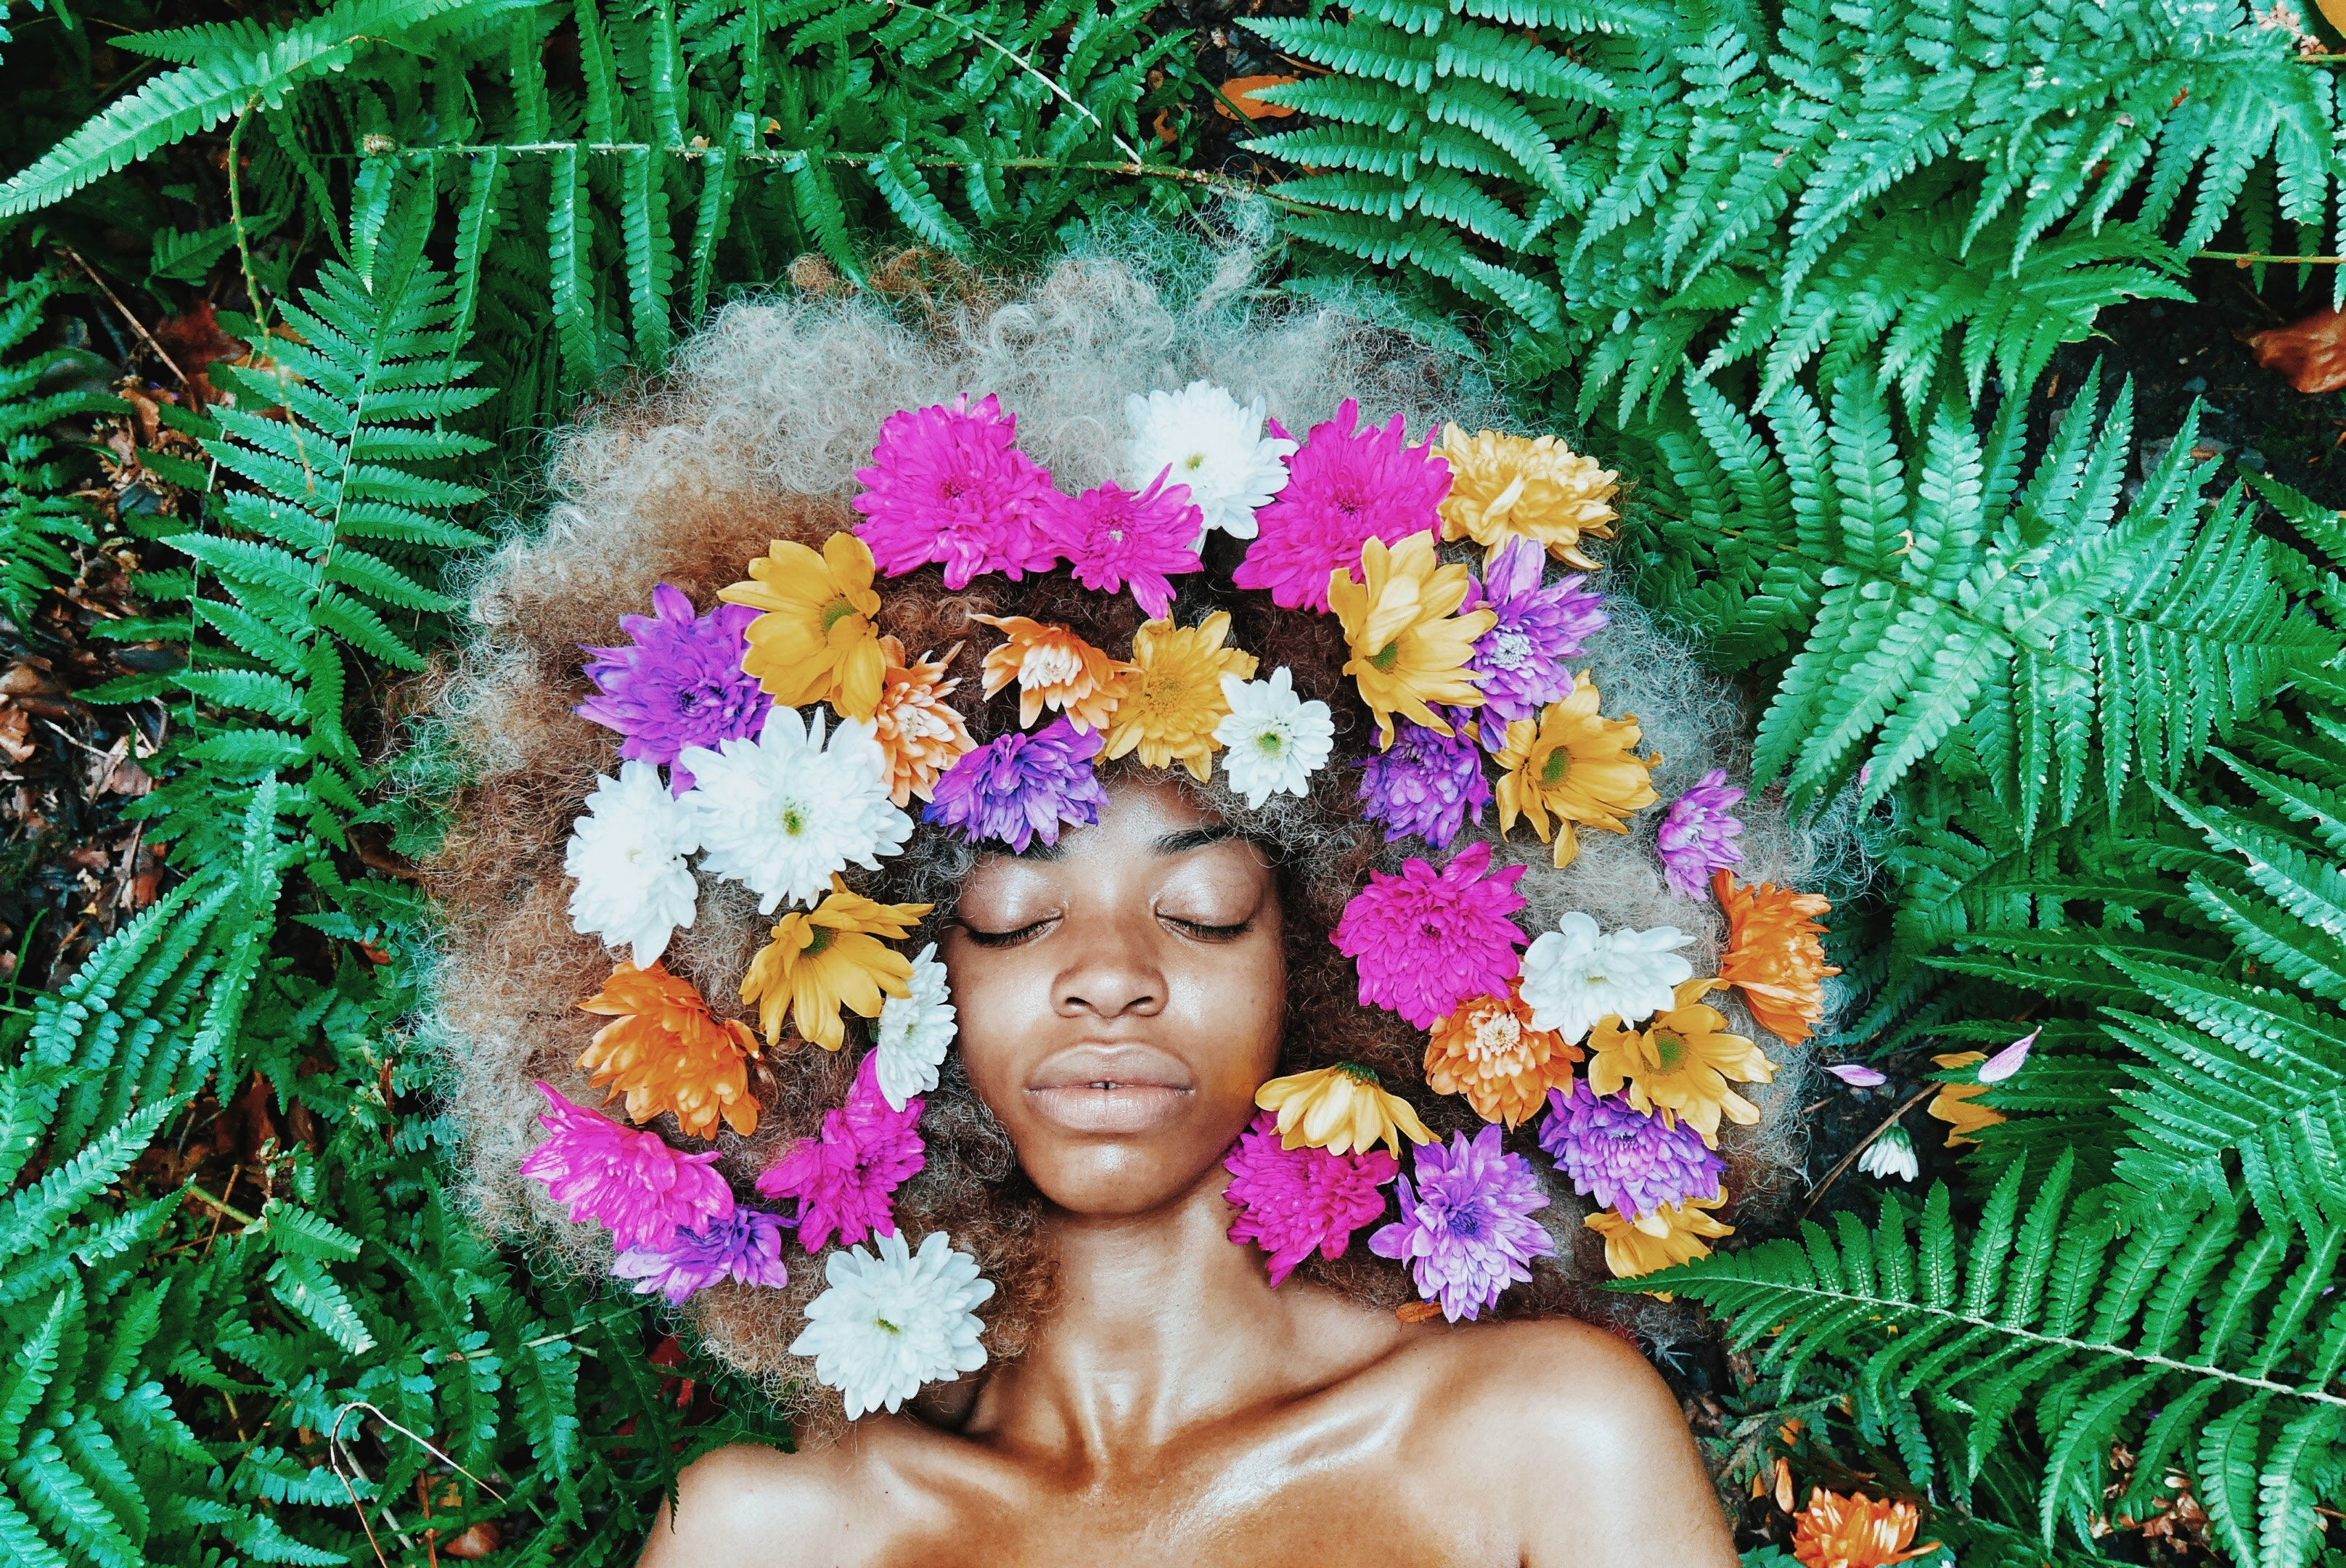 Black woman with flowers in her hair surrounded by plants.